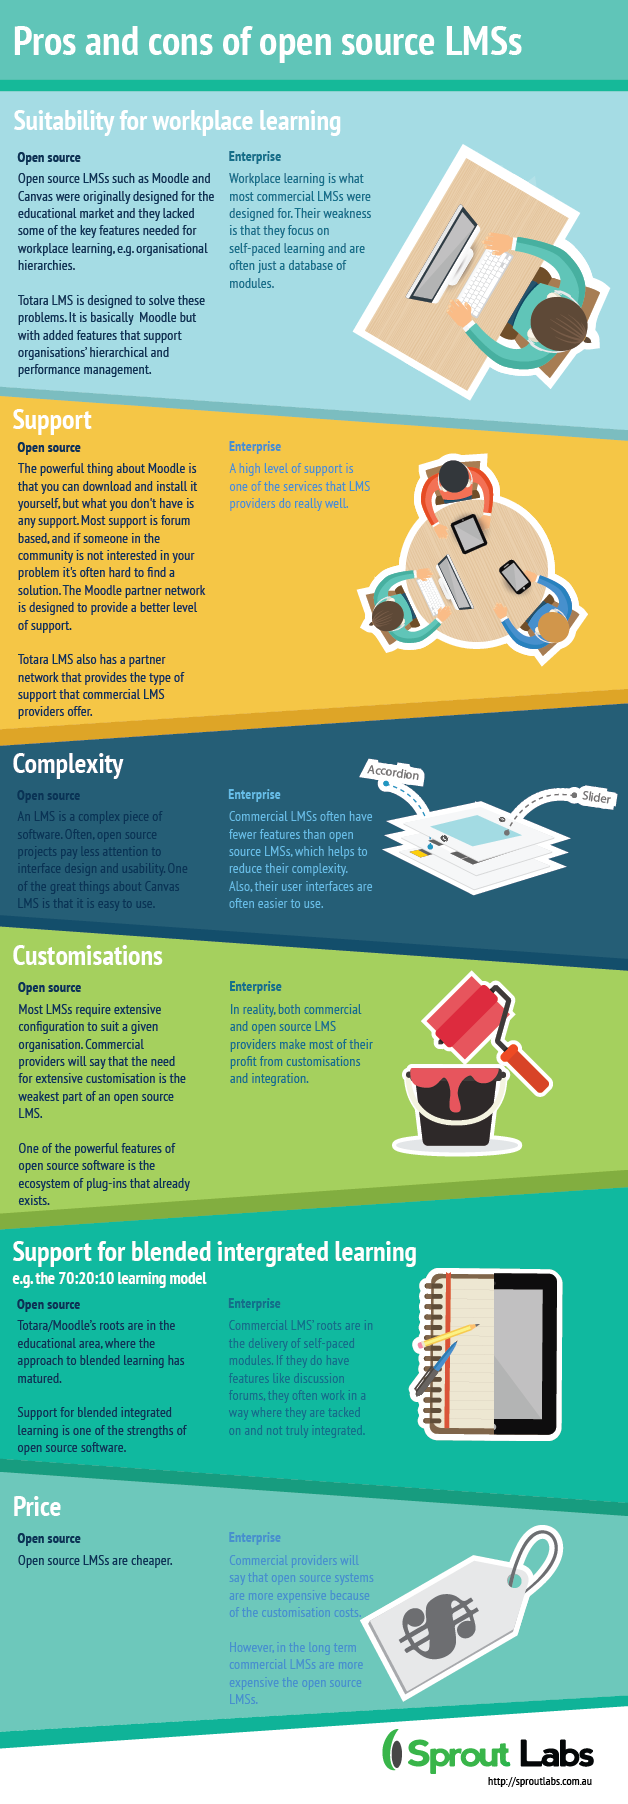 Pros And Cons Of Open Source Lmss Infographic E Learning Infographics Workplace Learning Elearning Learning Management System